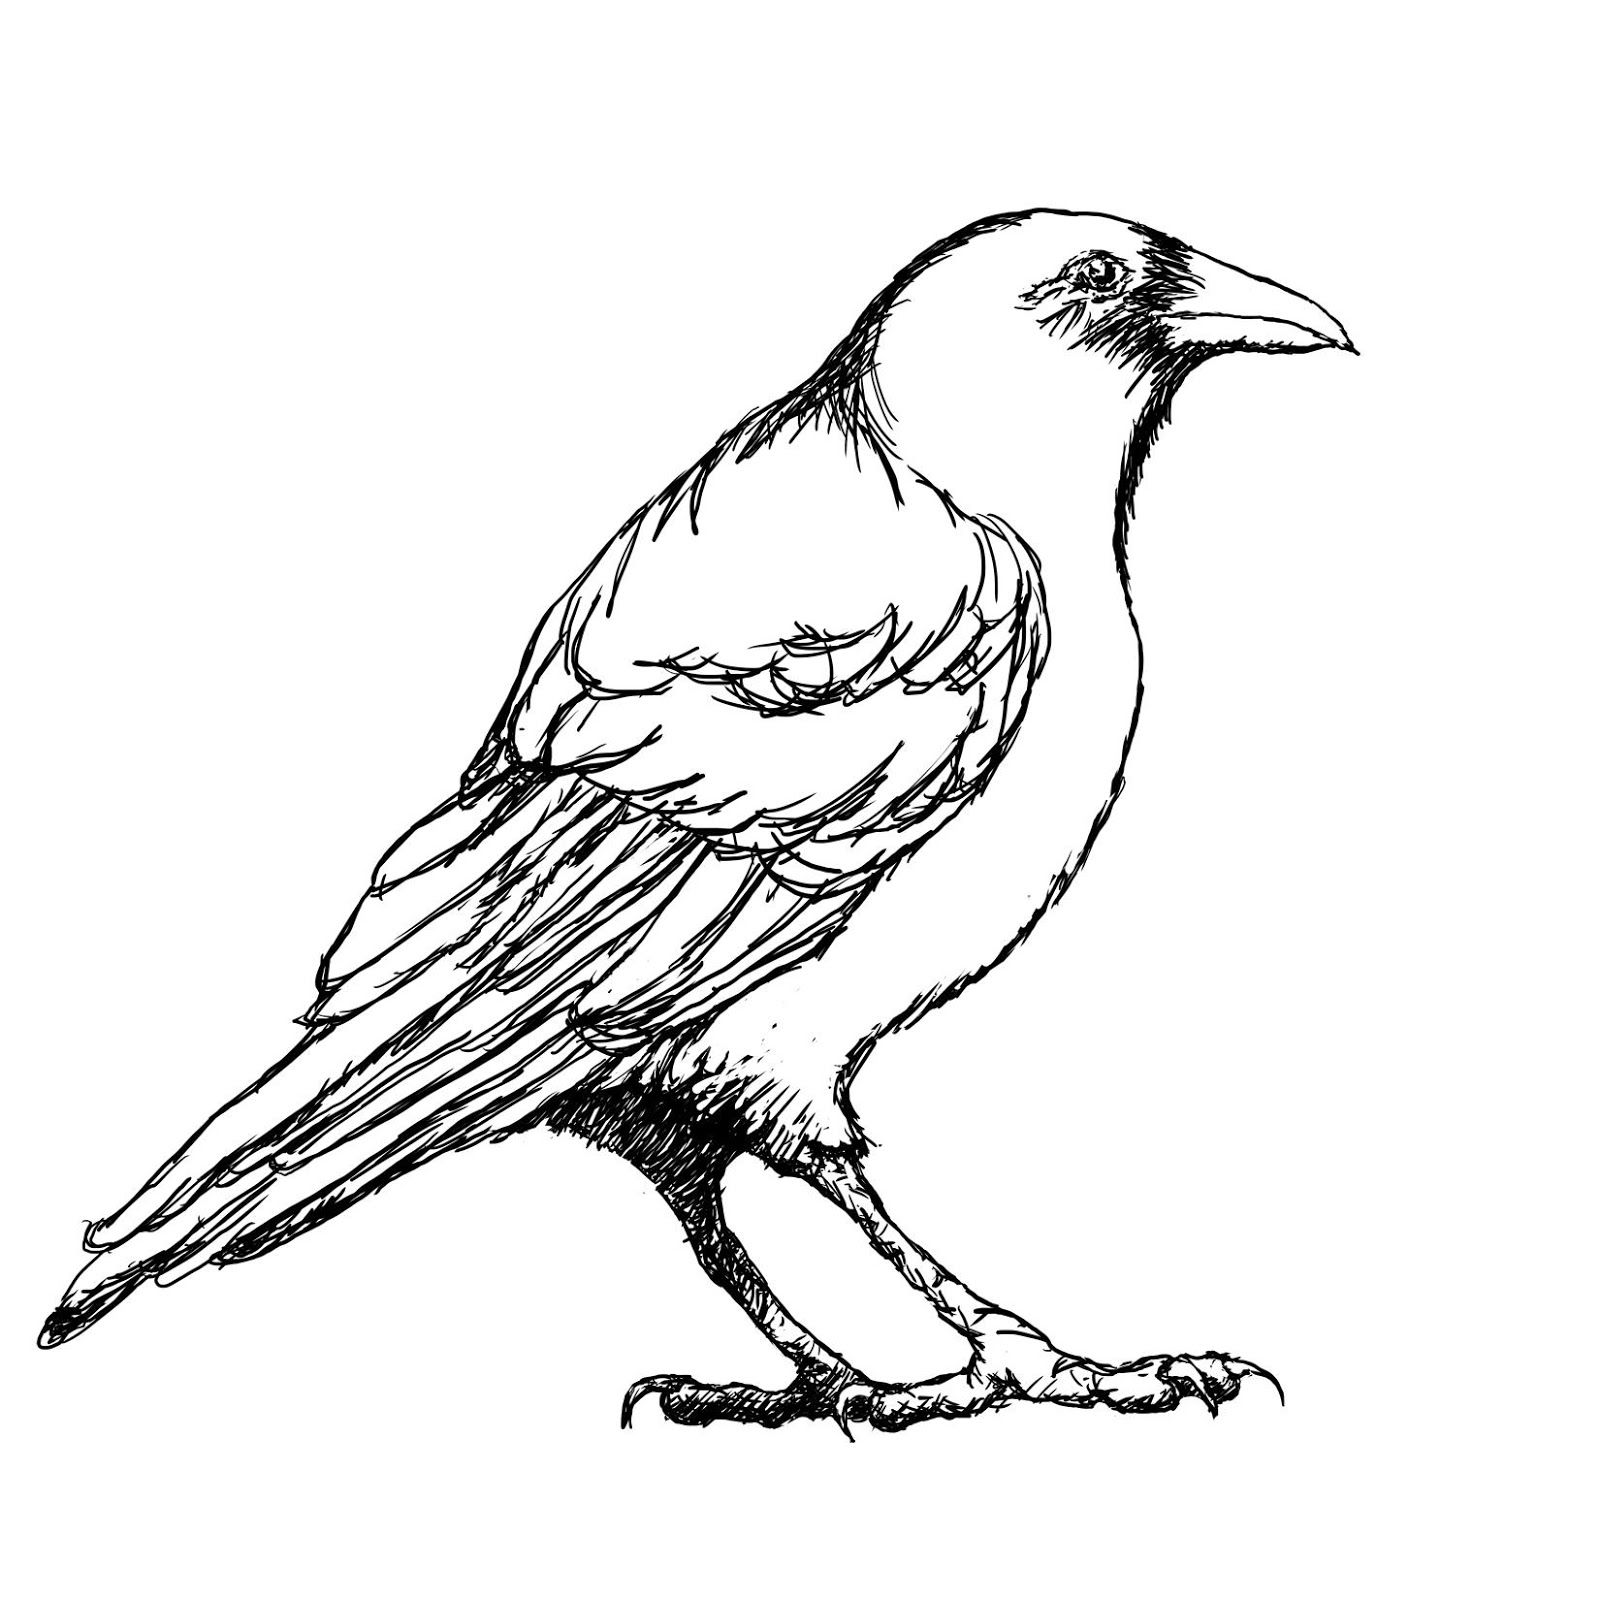 Crow Outline Drawing Sketch Coloring Page